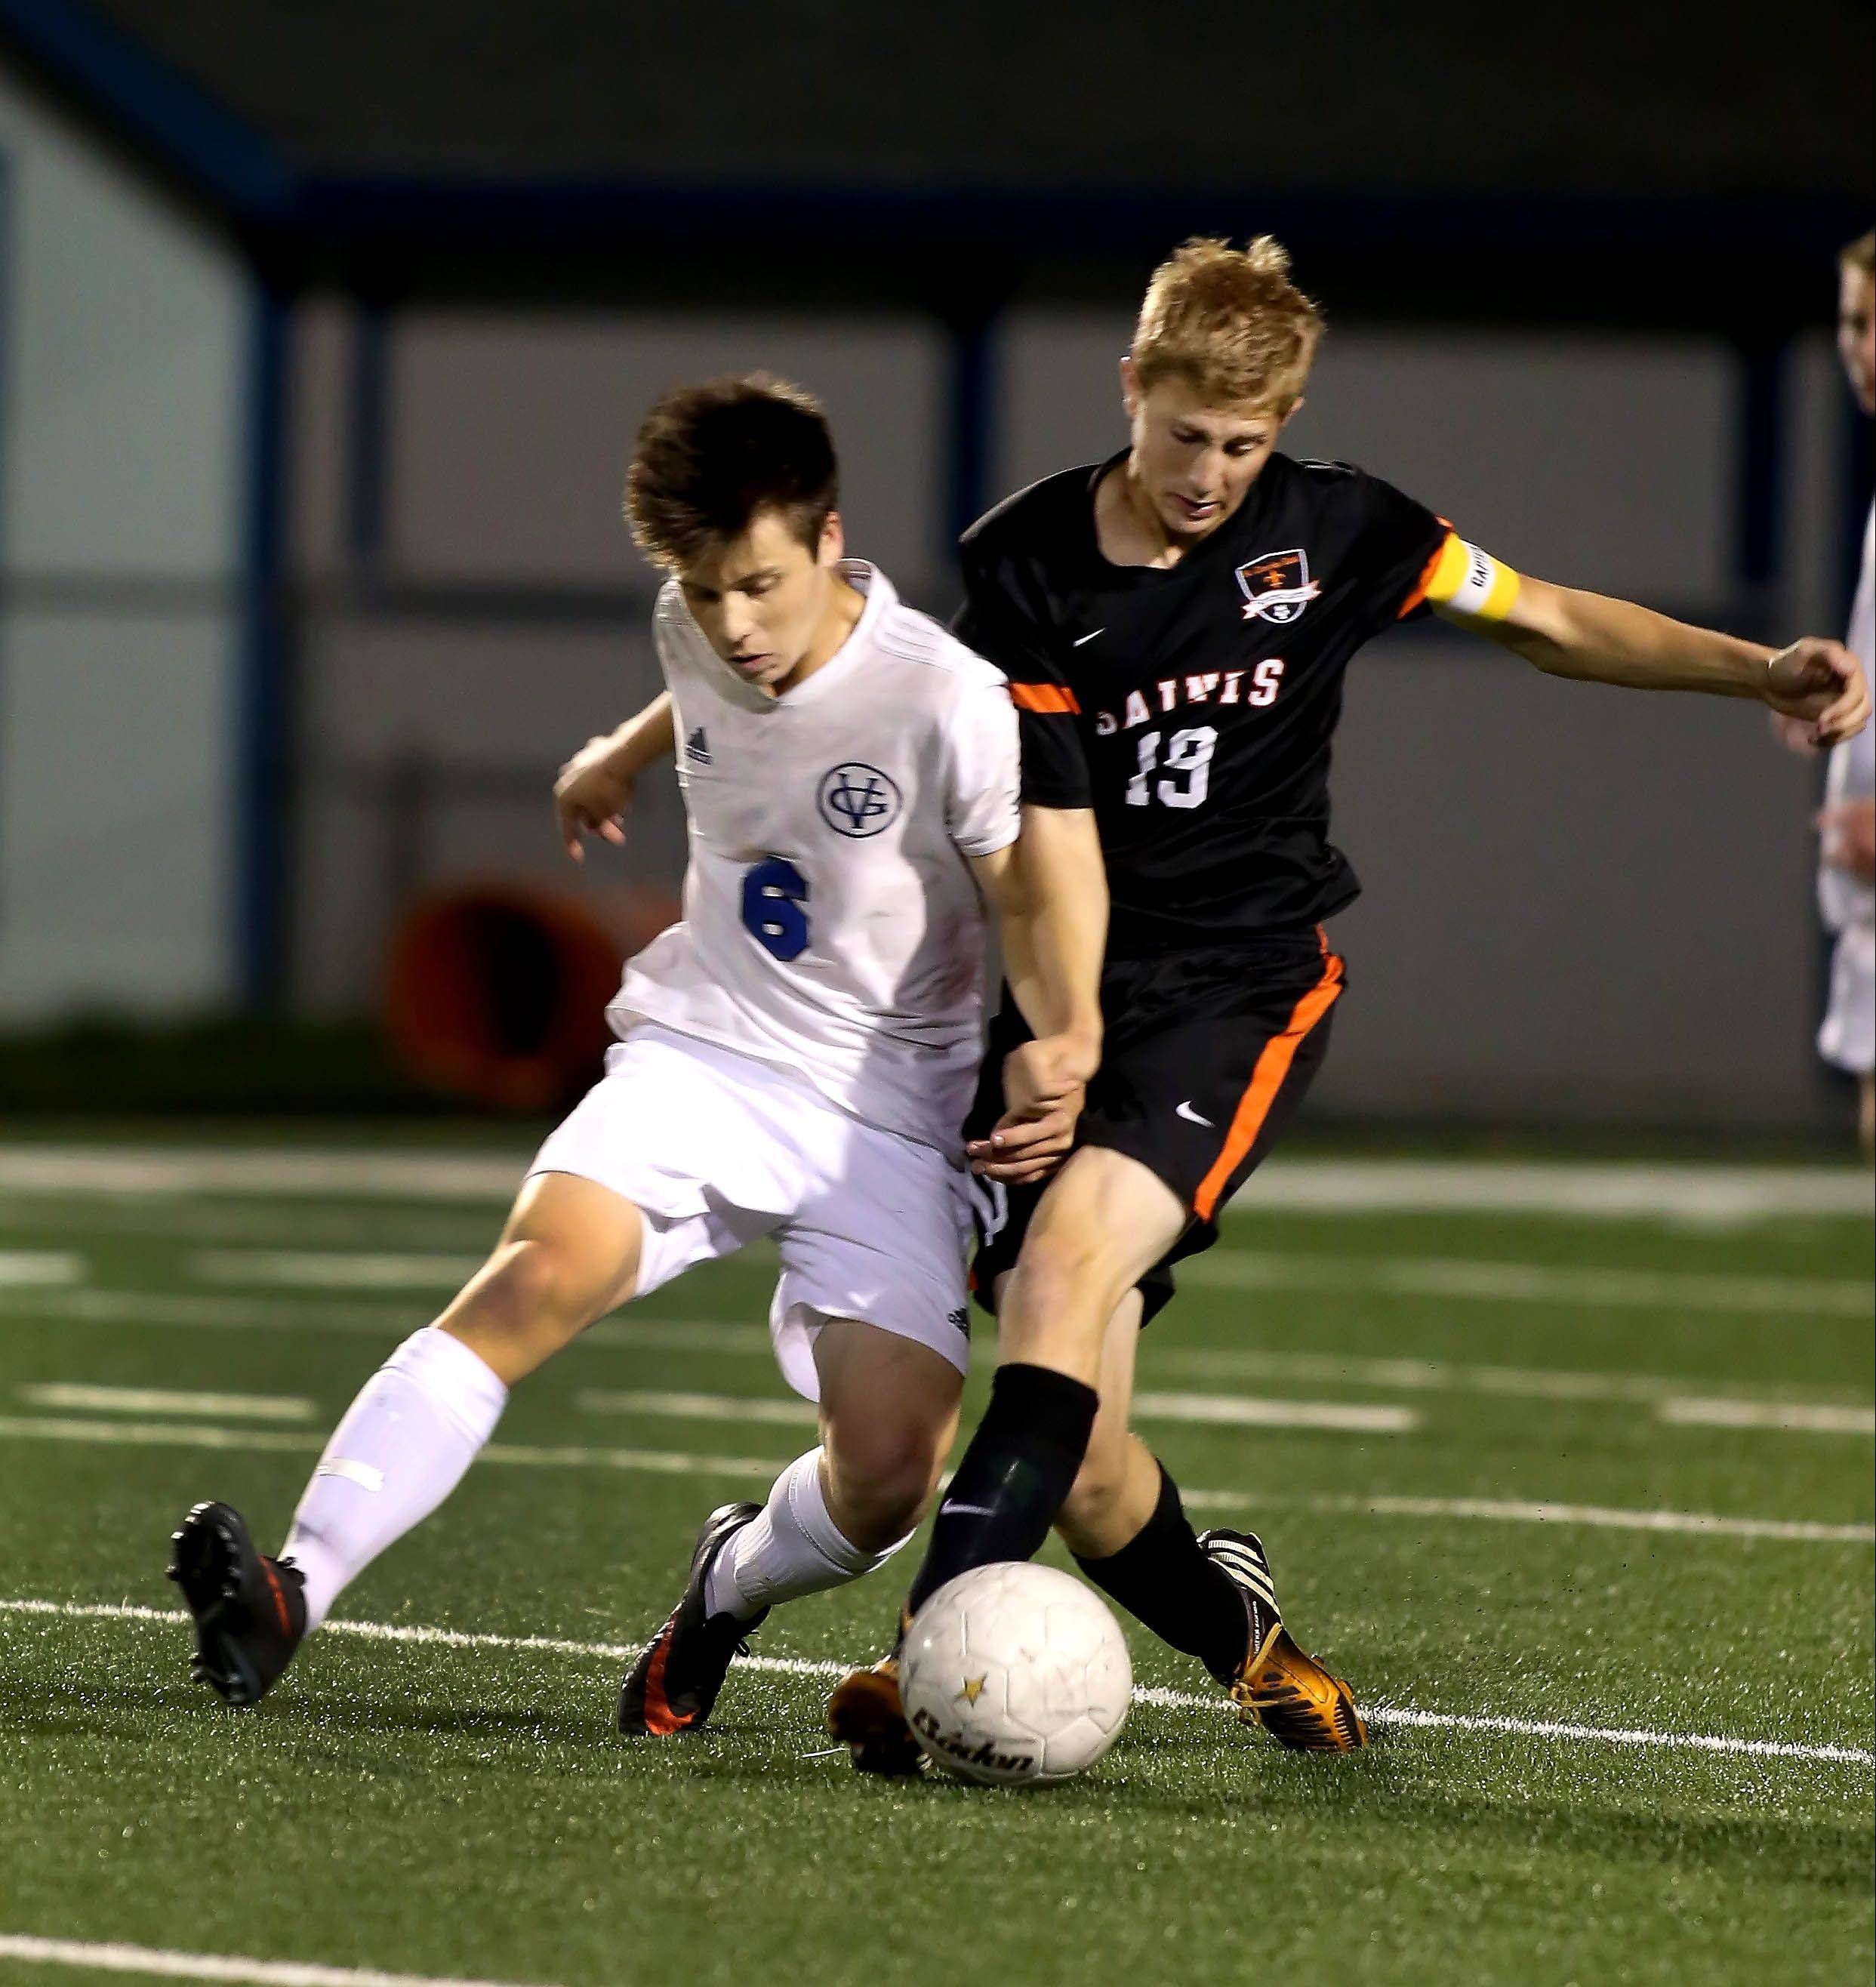 Calen Colbert of Geneva, left, and Andrew Shone of St. Charles East, right, in action for the ball during Tri-Cities boys soccer in Geneva on Tuesday.